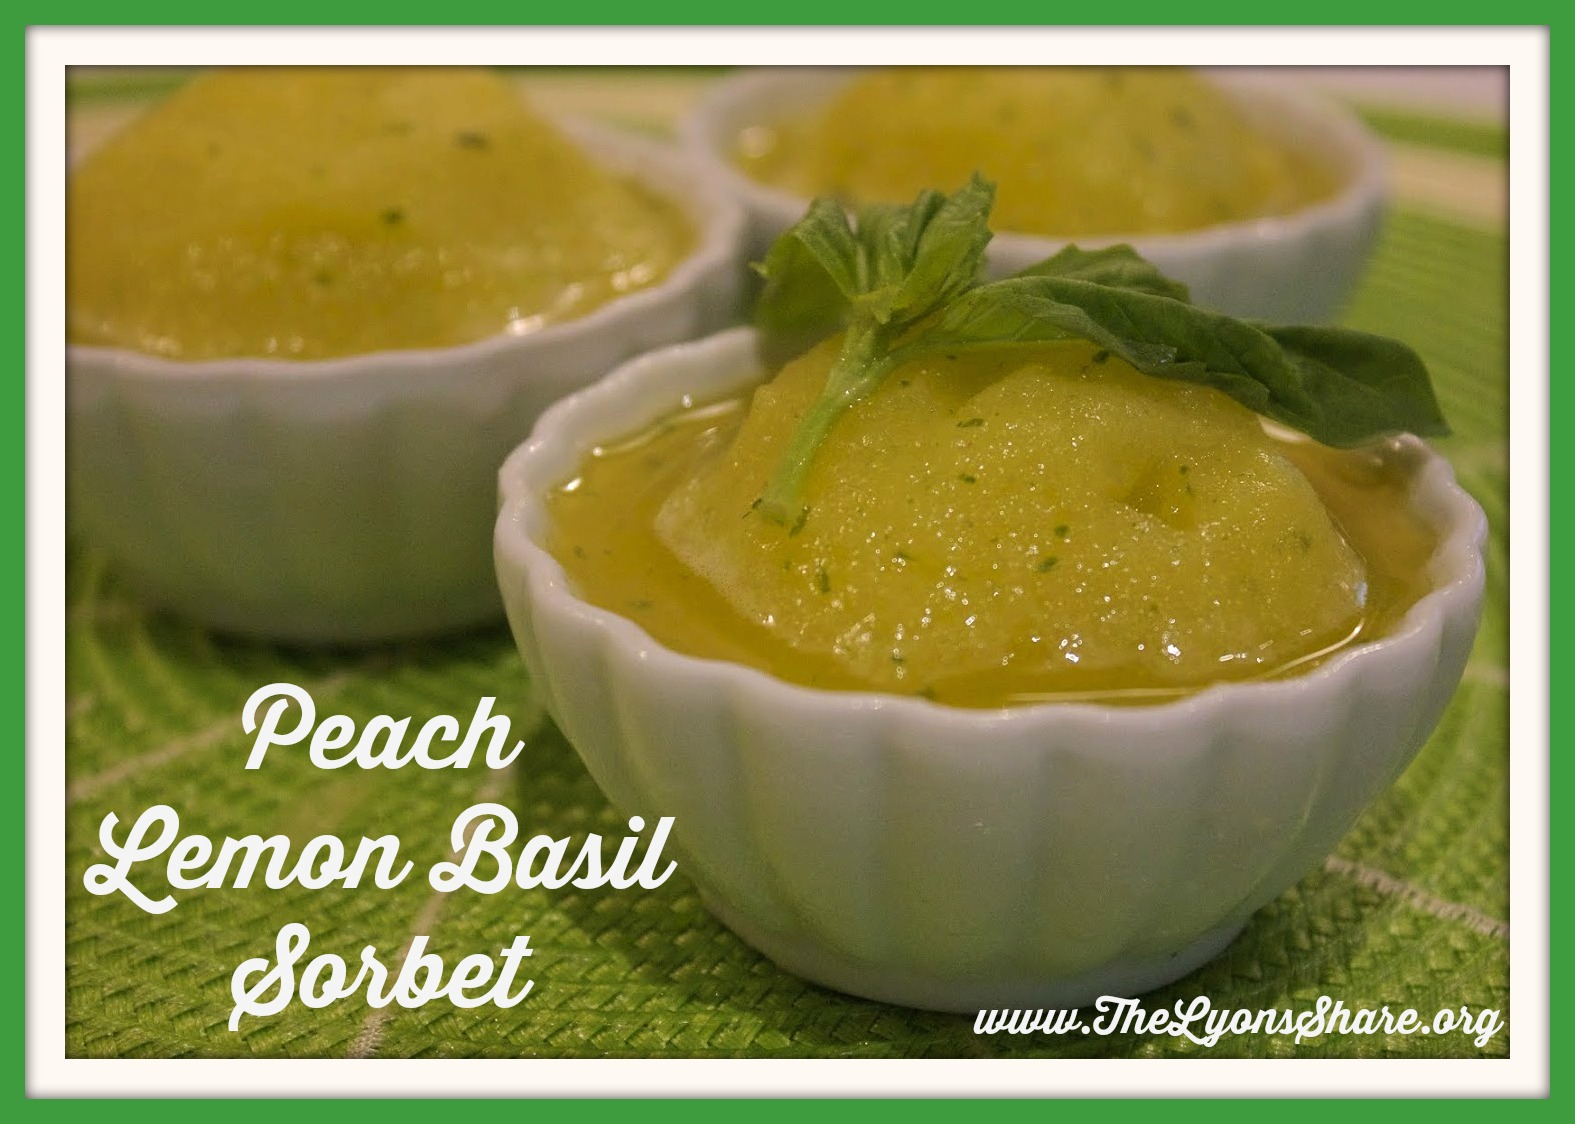 Peach Lemon Basil Sorbet from The Lyons' Share2